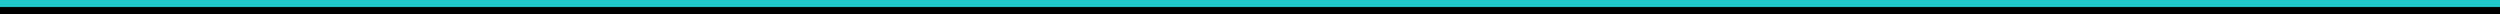 Black & Teal (teal up) for Website Skinny.jpg